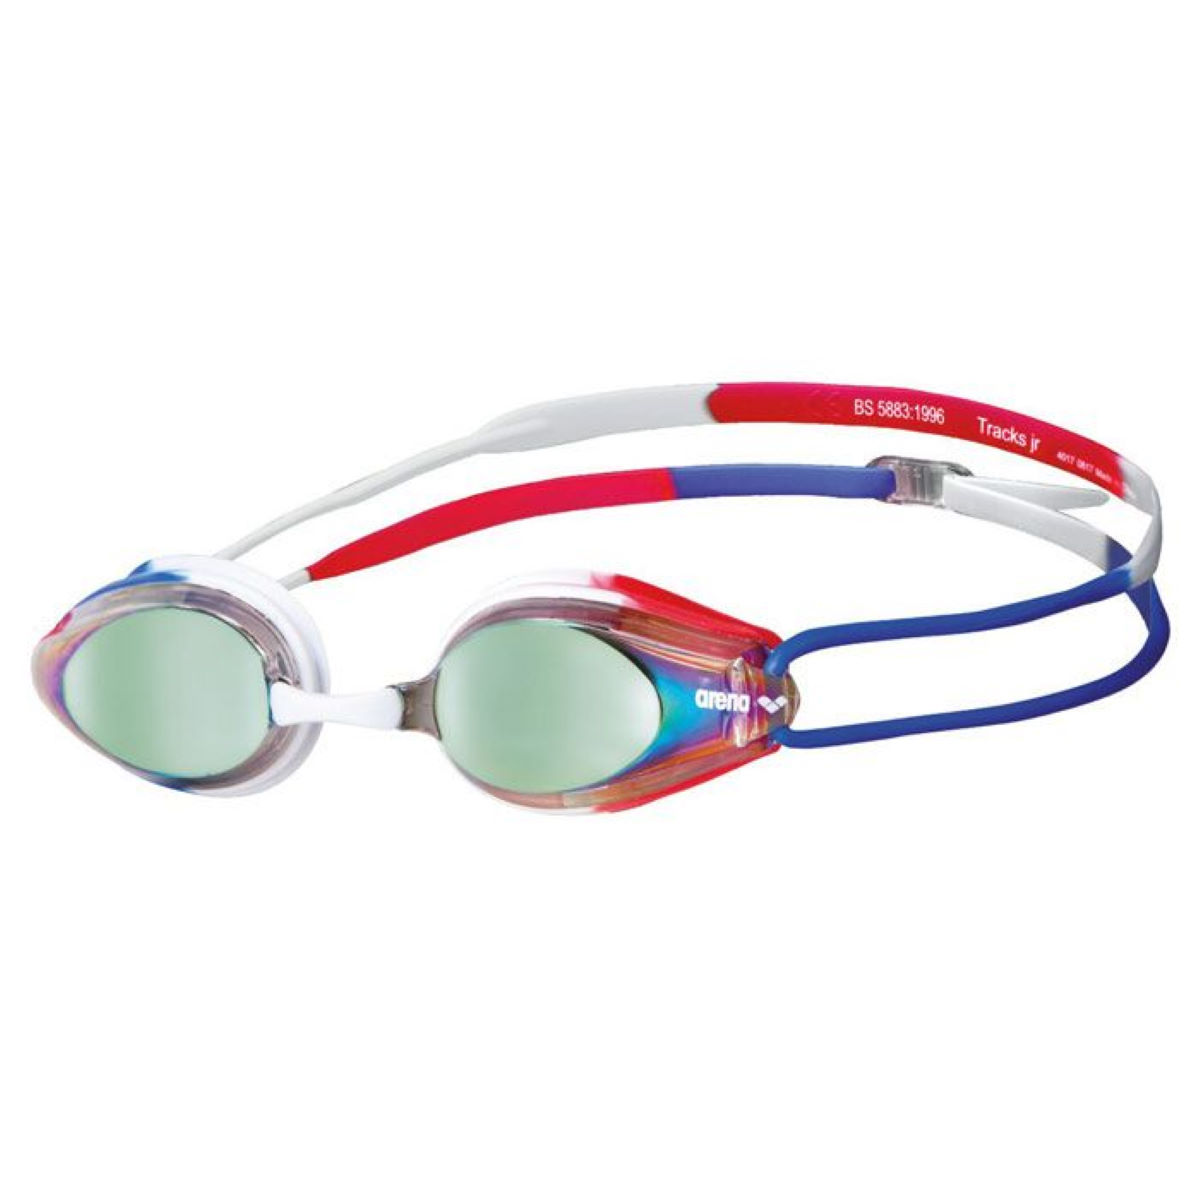 Arena Tracks Mirror Goggles - One Size Gold/blue/red  Goggles